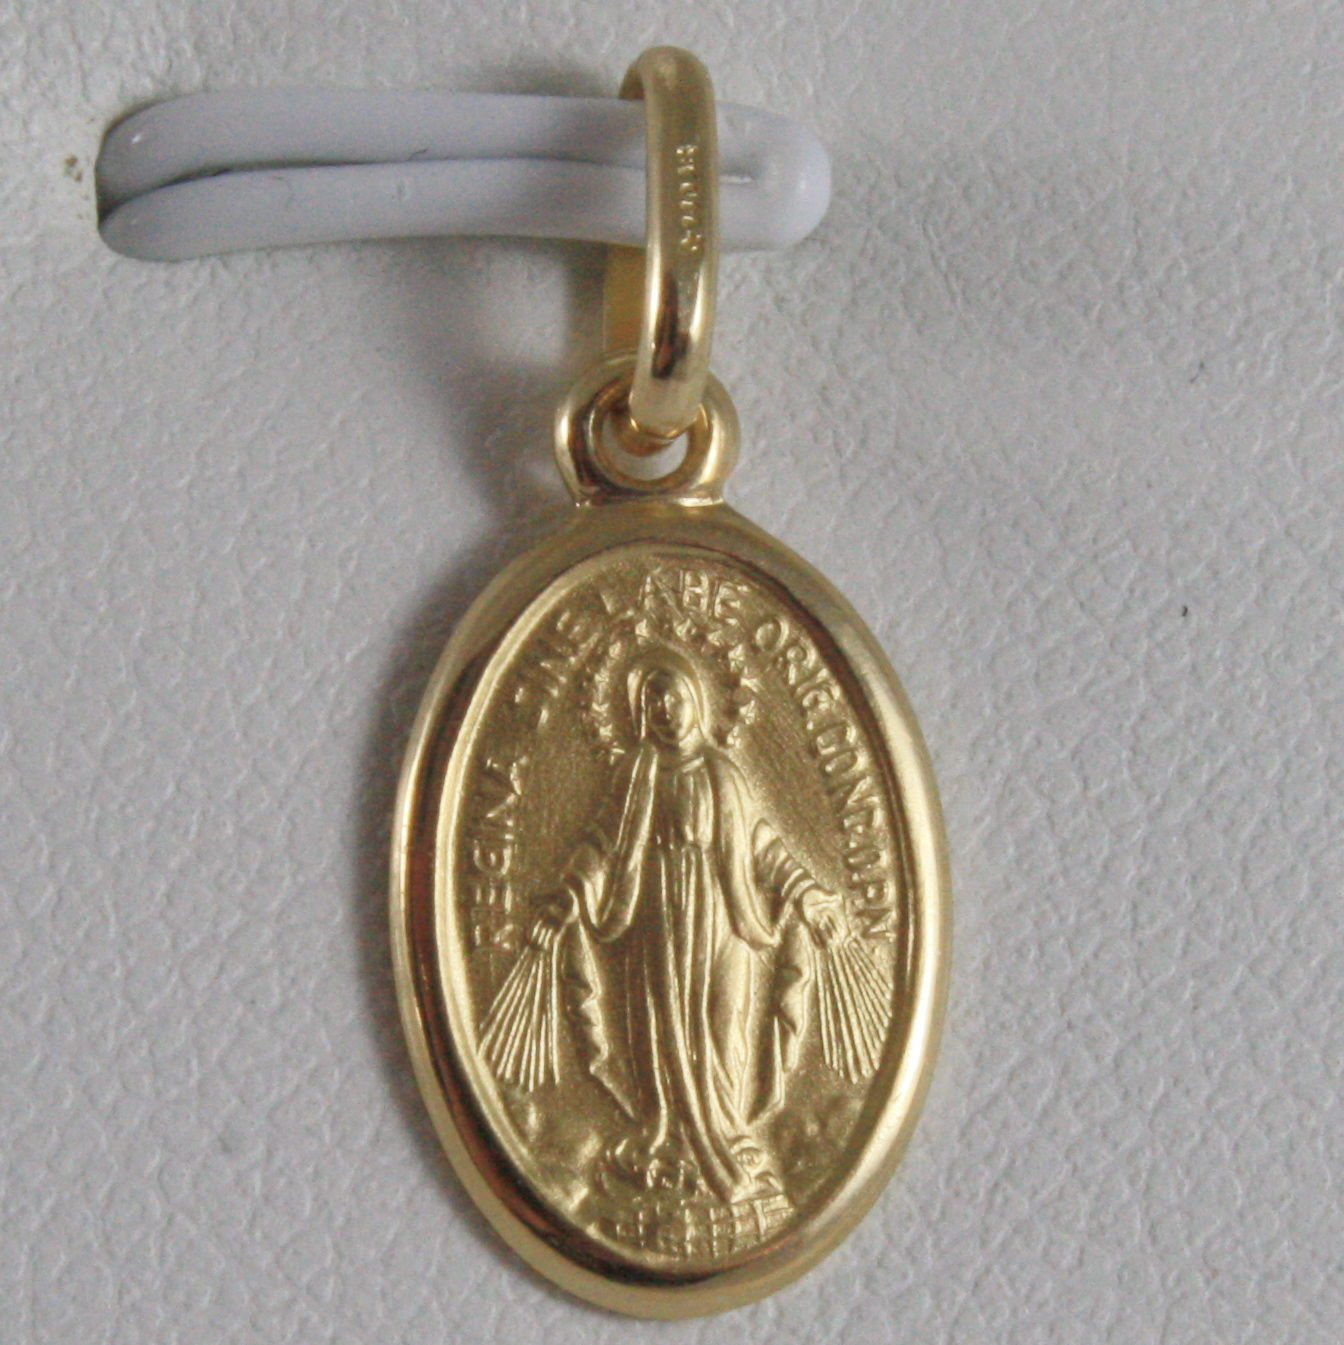 SOLID 18K YELLOW GOLD MIRACULOUS MEDAL, VIRGIN MARY, MADONNA, 0.79 MADE IN ITALY